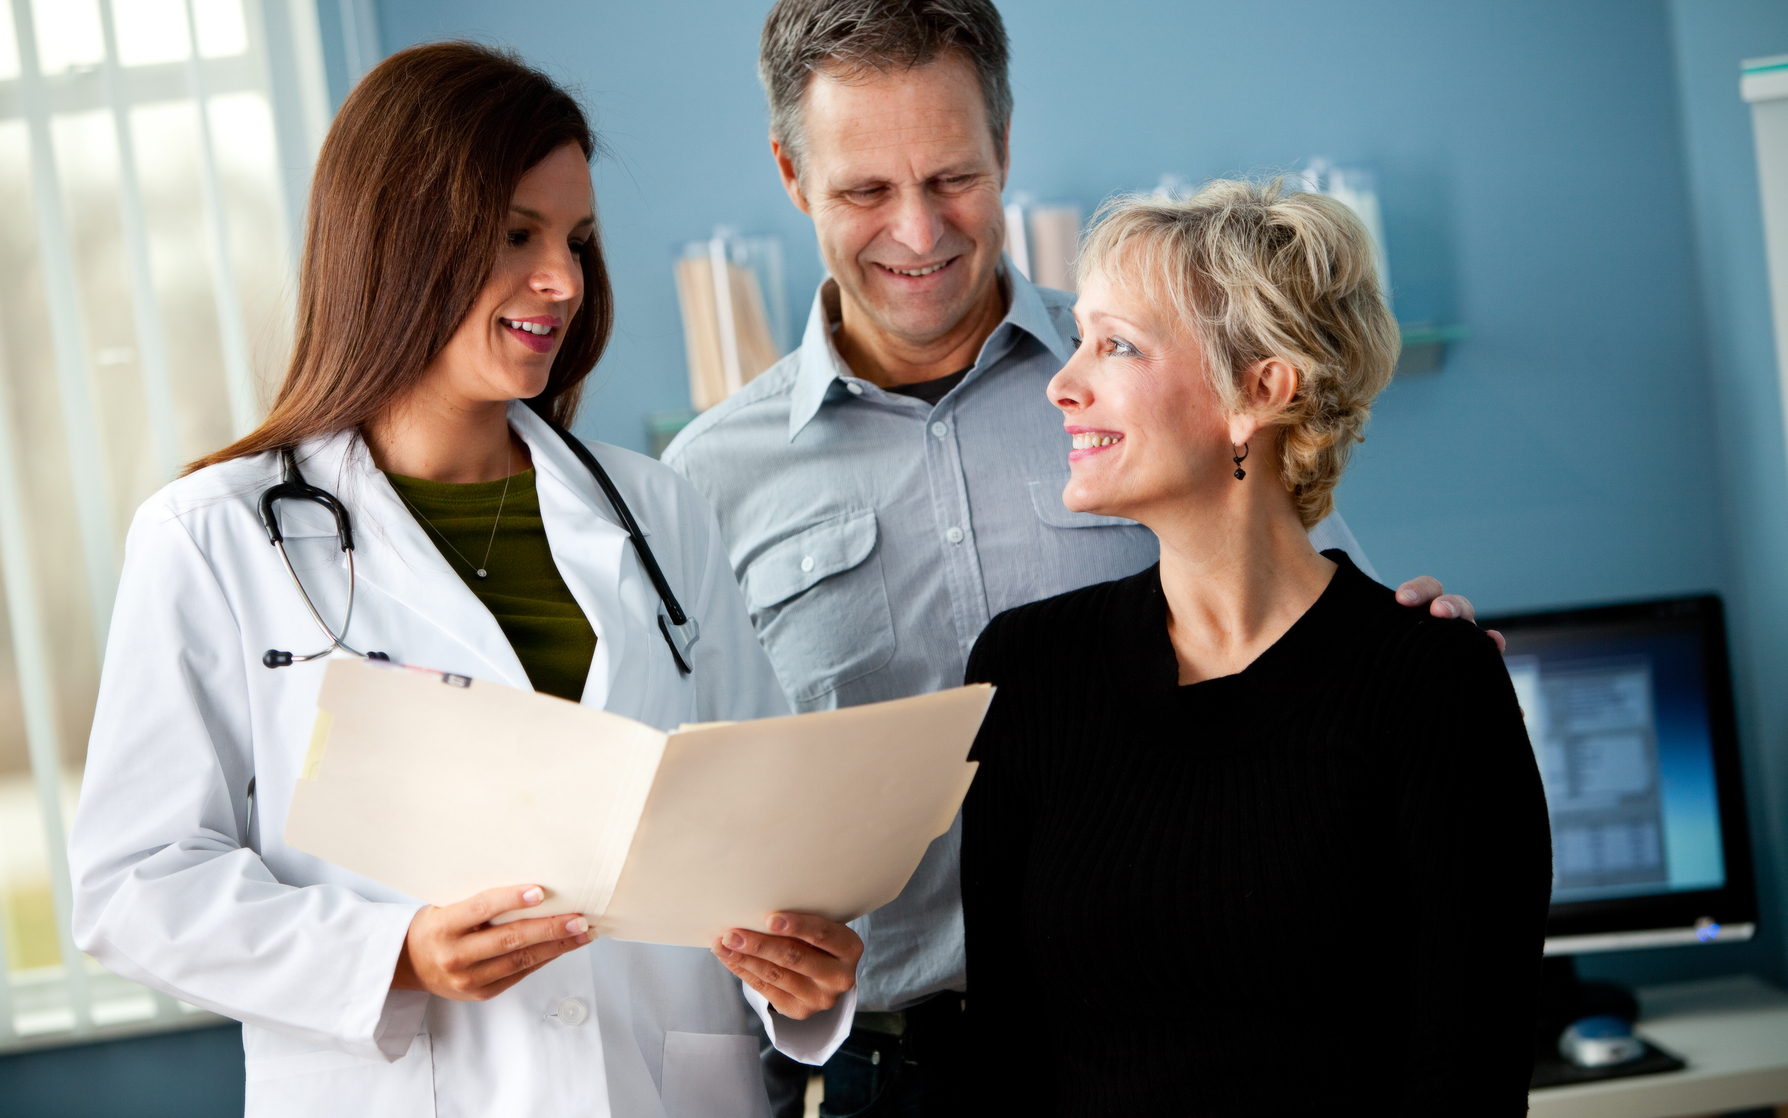 Exam Room: Husband and Wife Get Positive Results